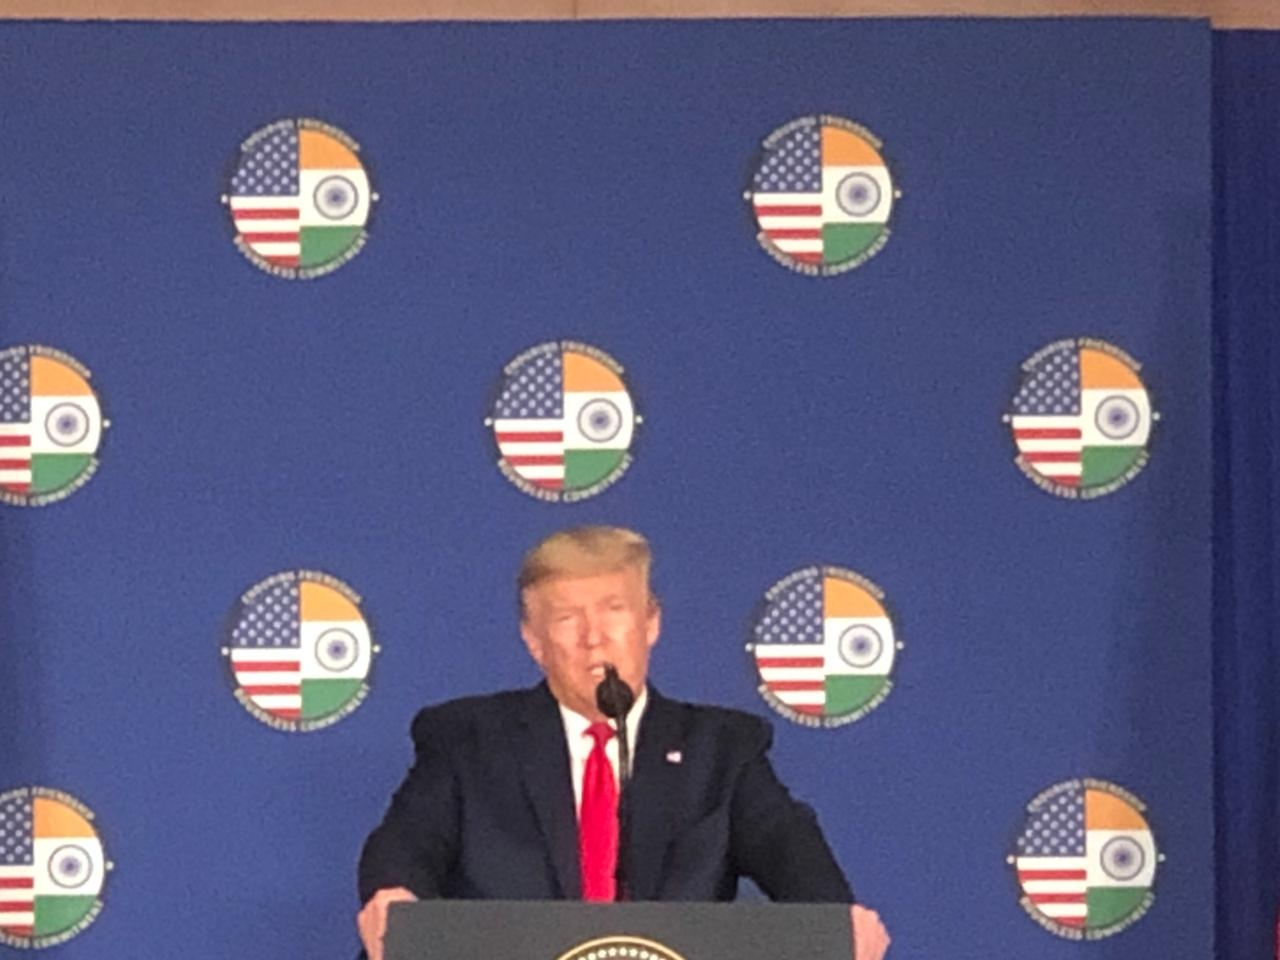 New Delhi: US President Donald Trump briefs the media, in New Delhi on Feb 25, 2020. (Photo: IANS)